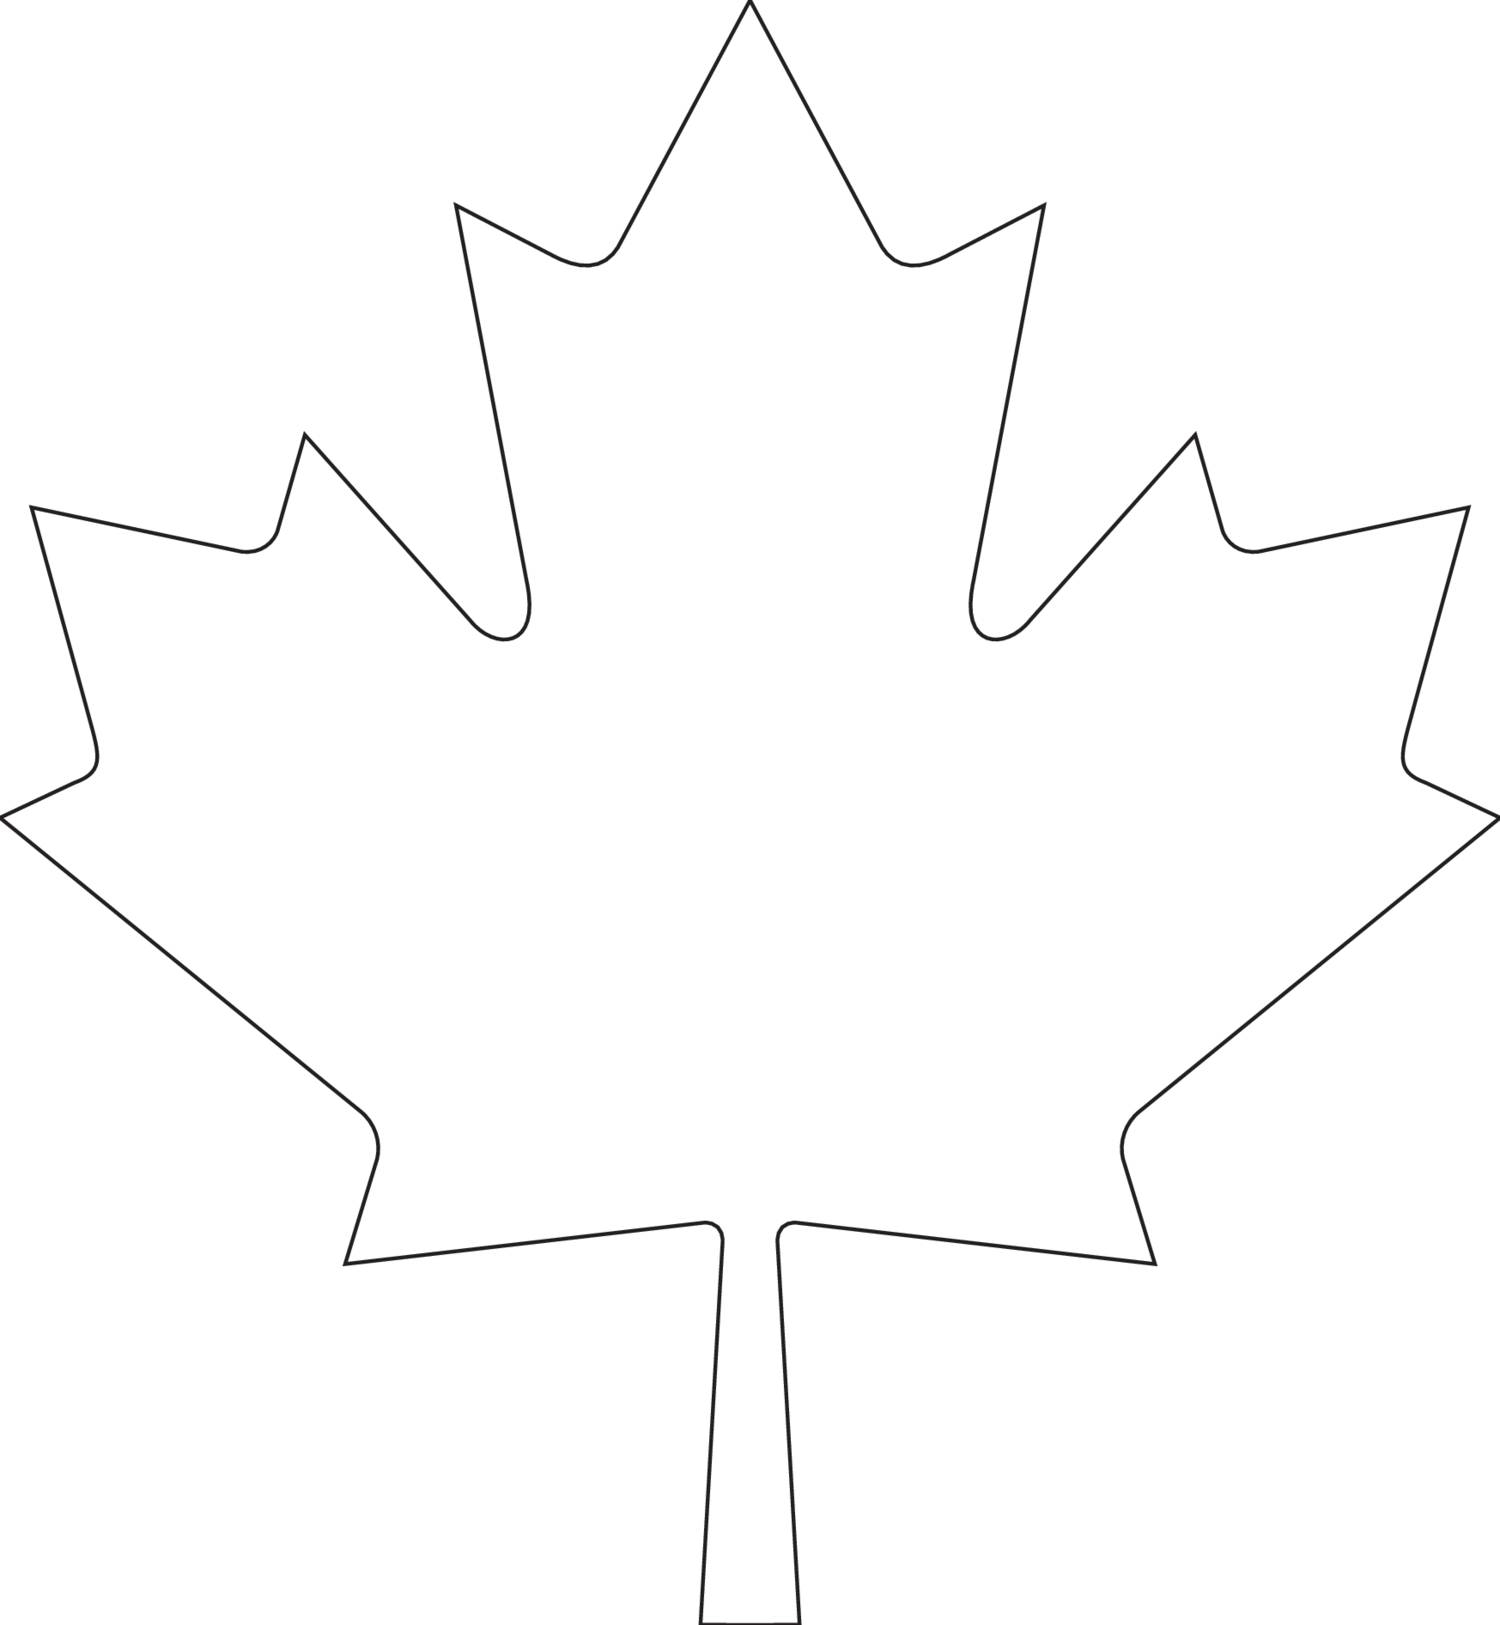 Canada Day Maple Leaf Template pdf DocDroid